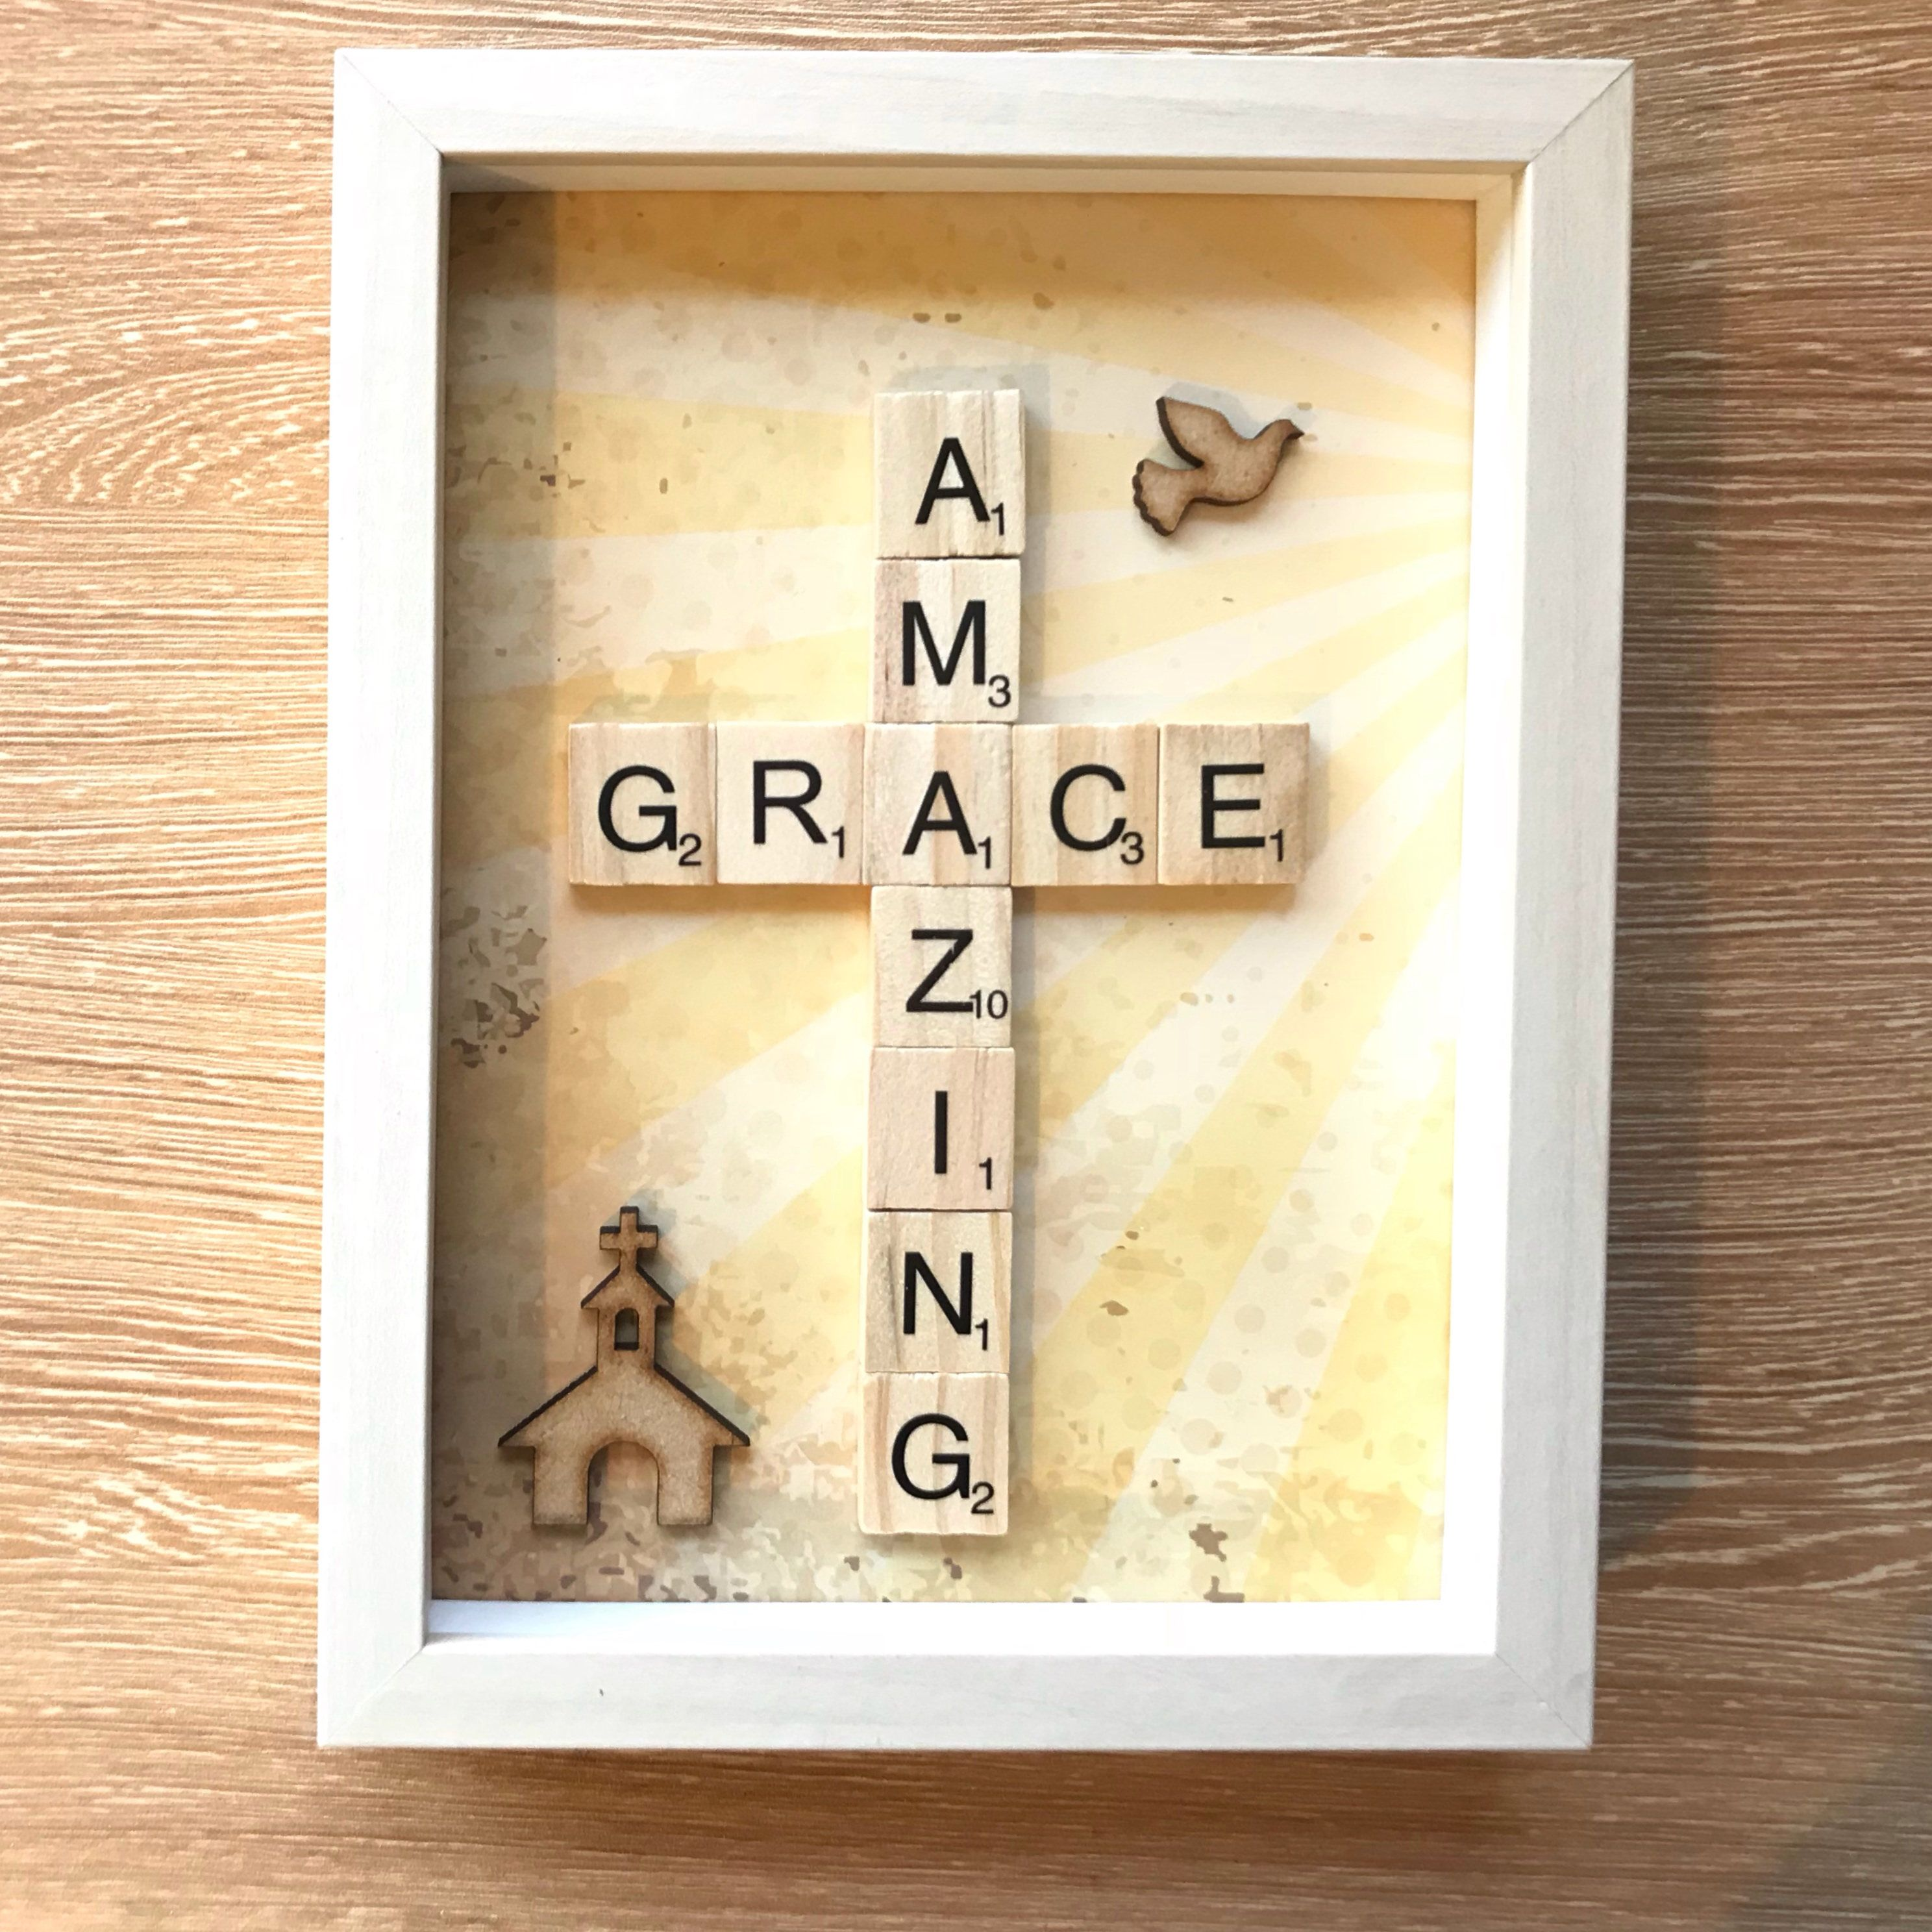 Amazing grace beautiful scrabble box frame christian church gift amazing grace beautiful scrabble box frame christian church gift christening gift easter gift church religious picture frame negle Image collections